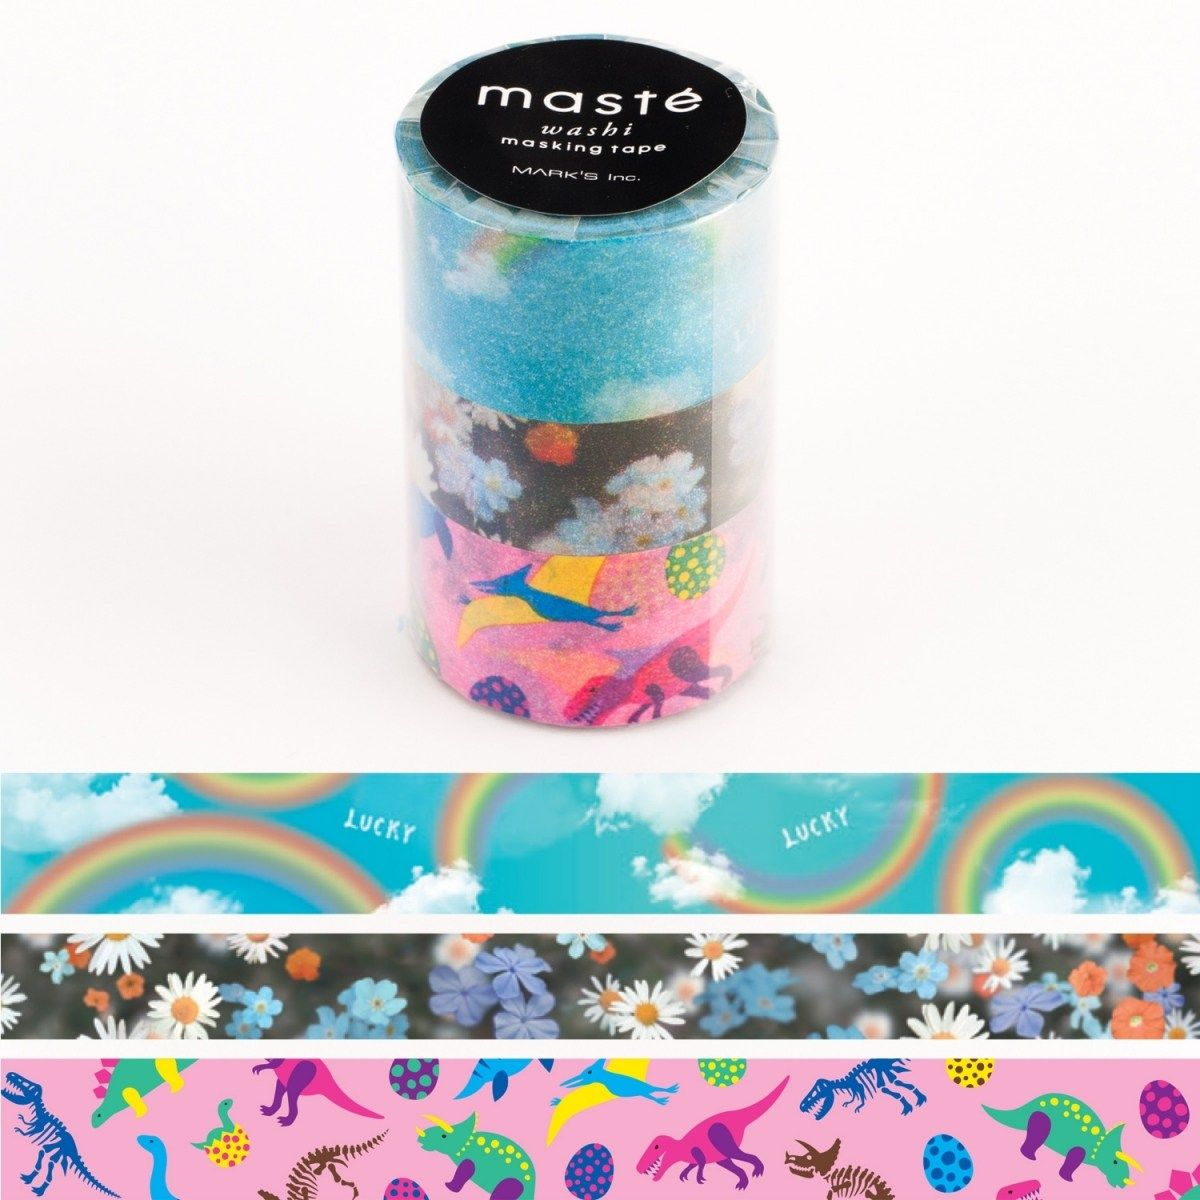 WASHI TAPE MASTÉ NATURE 3 (KIT C/ 3)